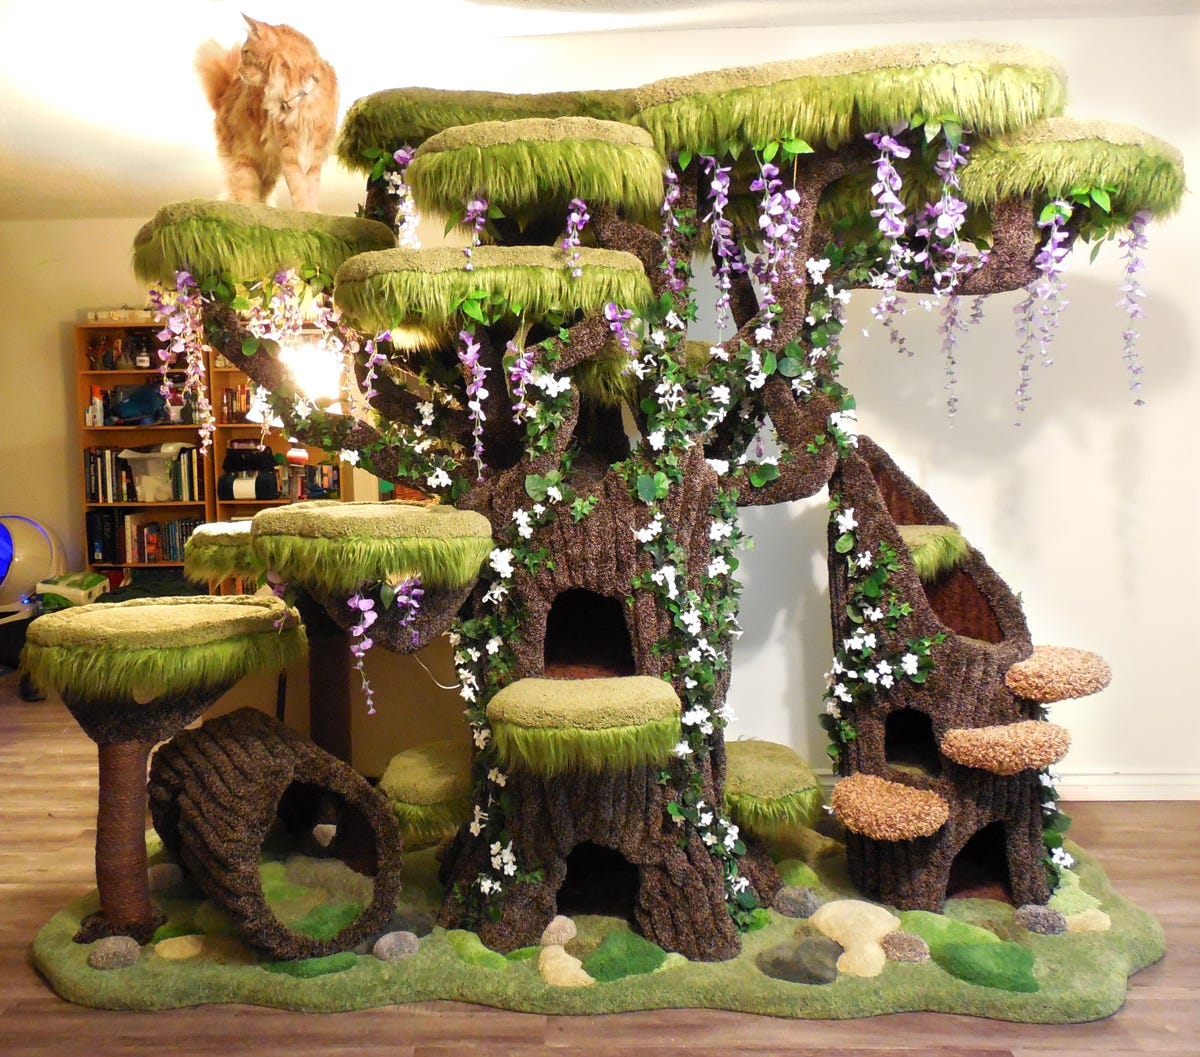 A cat sits on top of a cat tower designed to look like an enchanted tree.